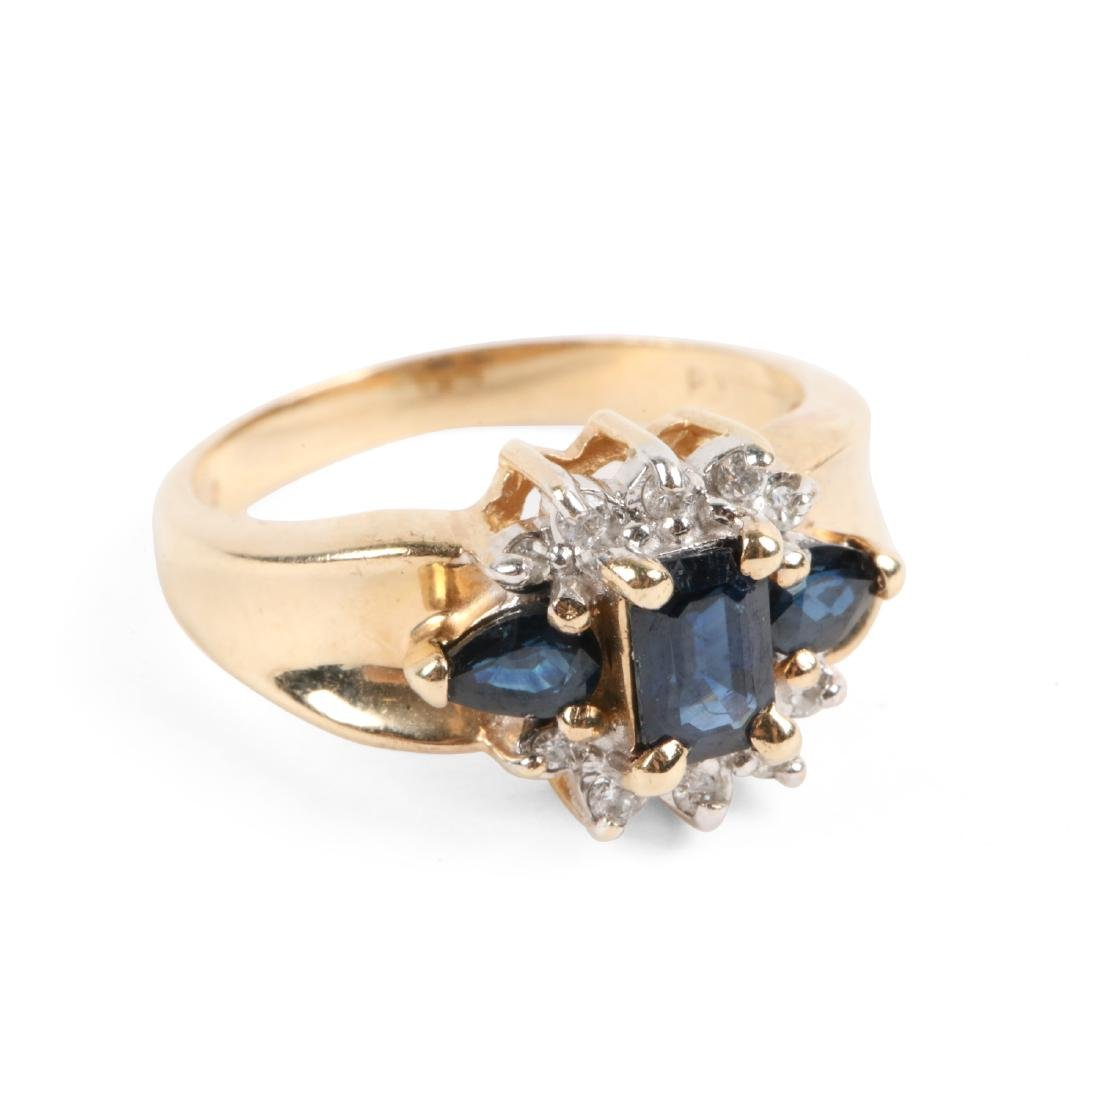 A 14K Gold, Sapphire Ring